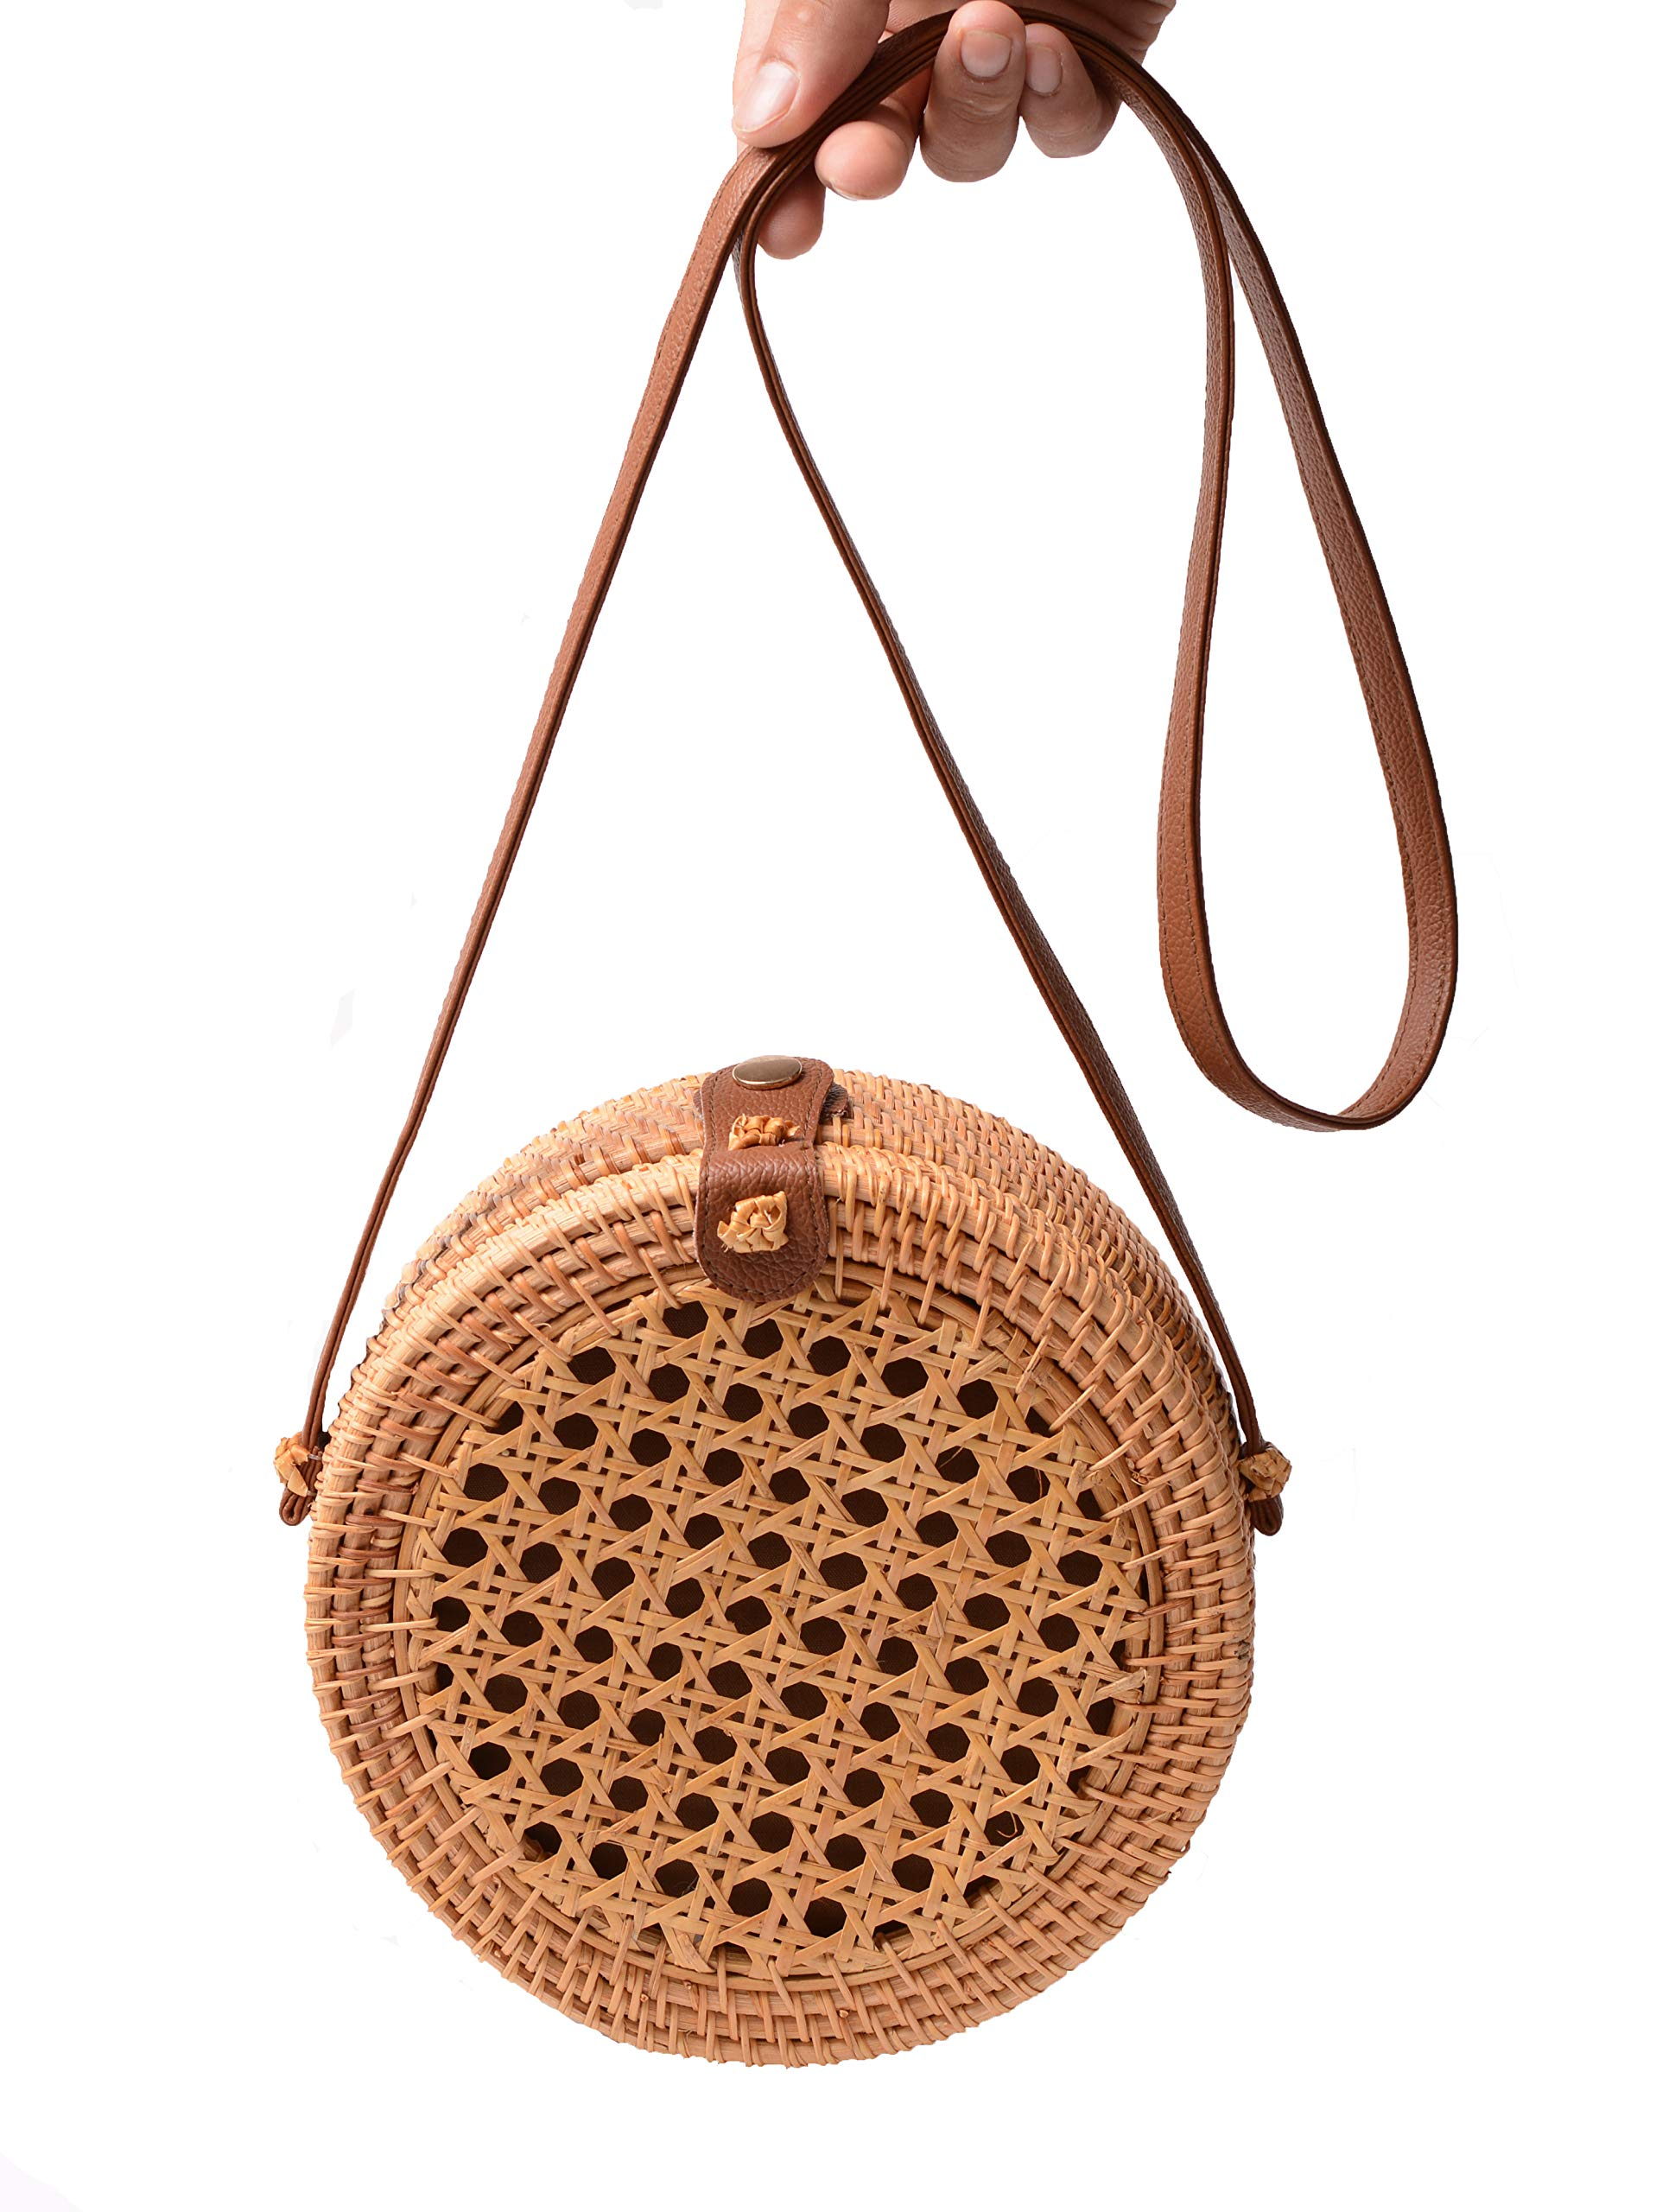 Handwoven Round Rattan Bag Shoulder Leather Straps Natural Chic Hand Gyryp (Leather buttons(grid))